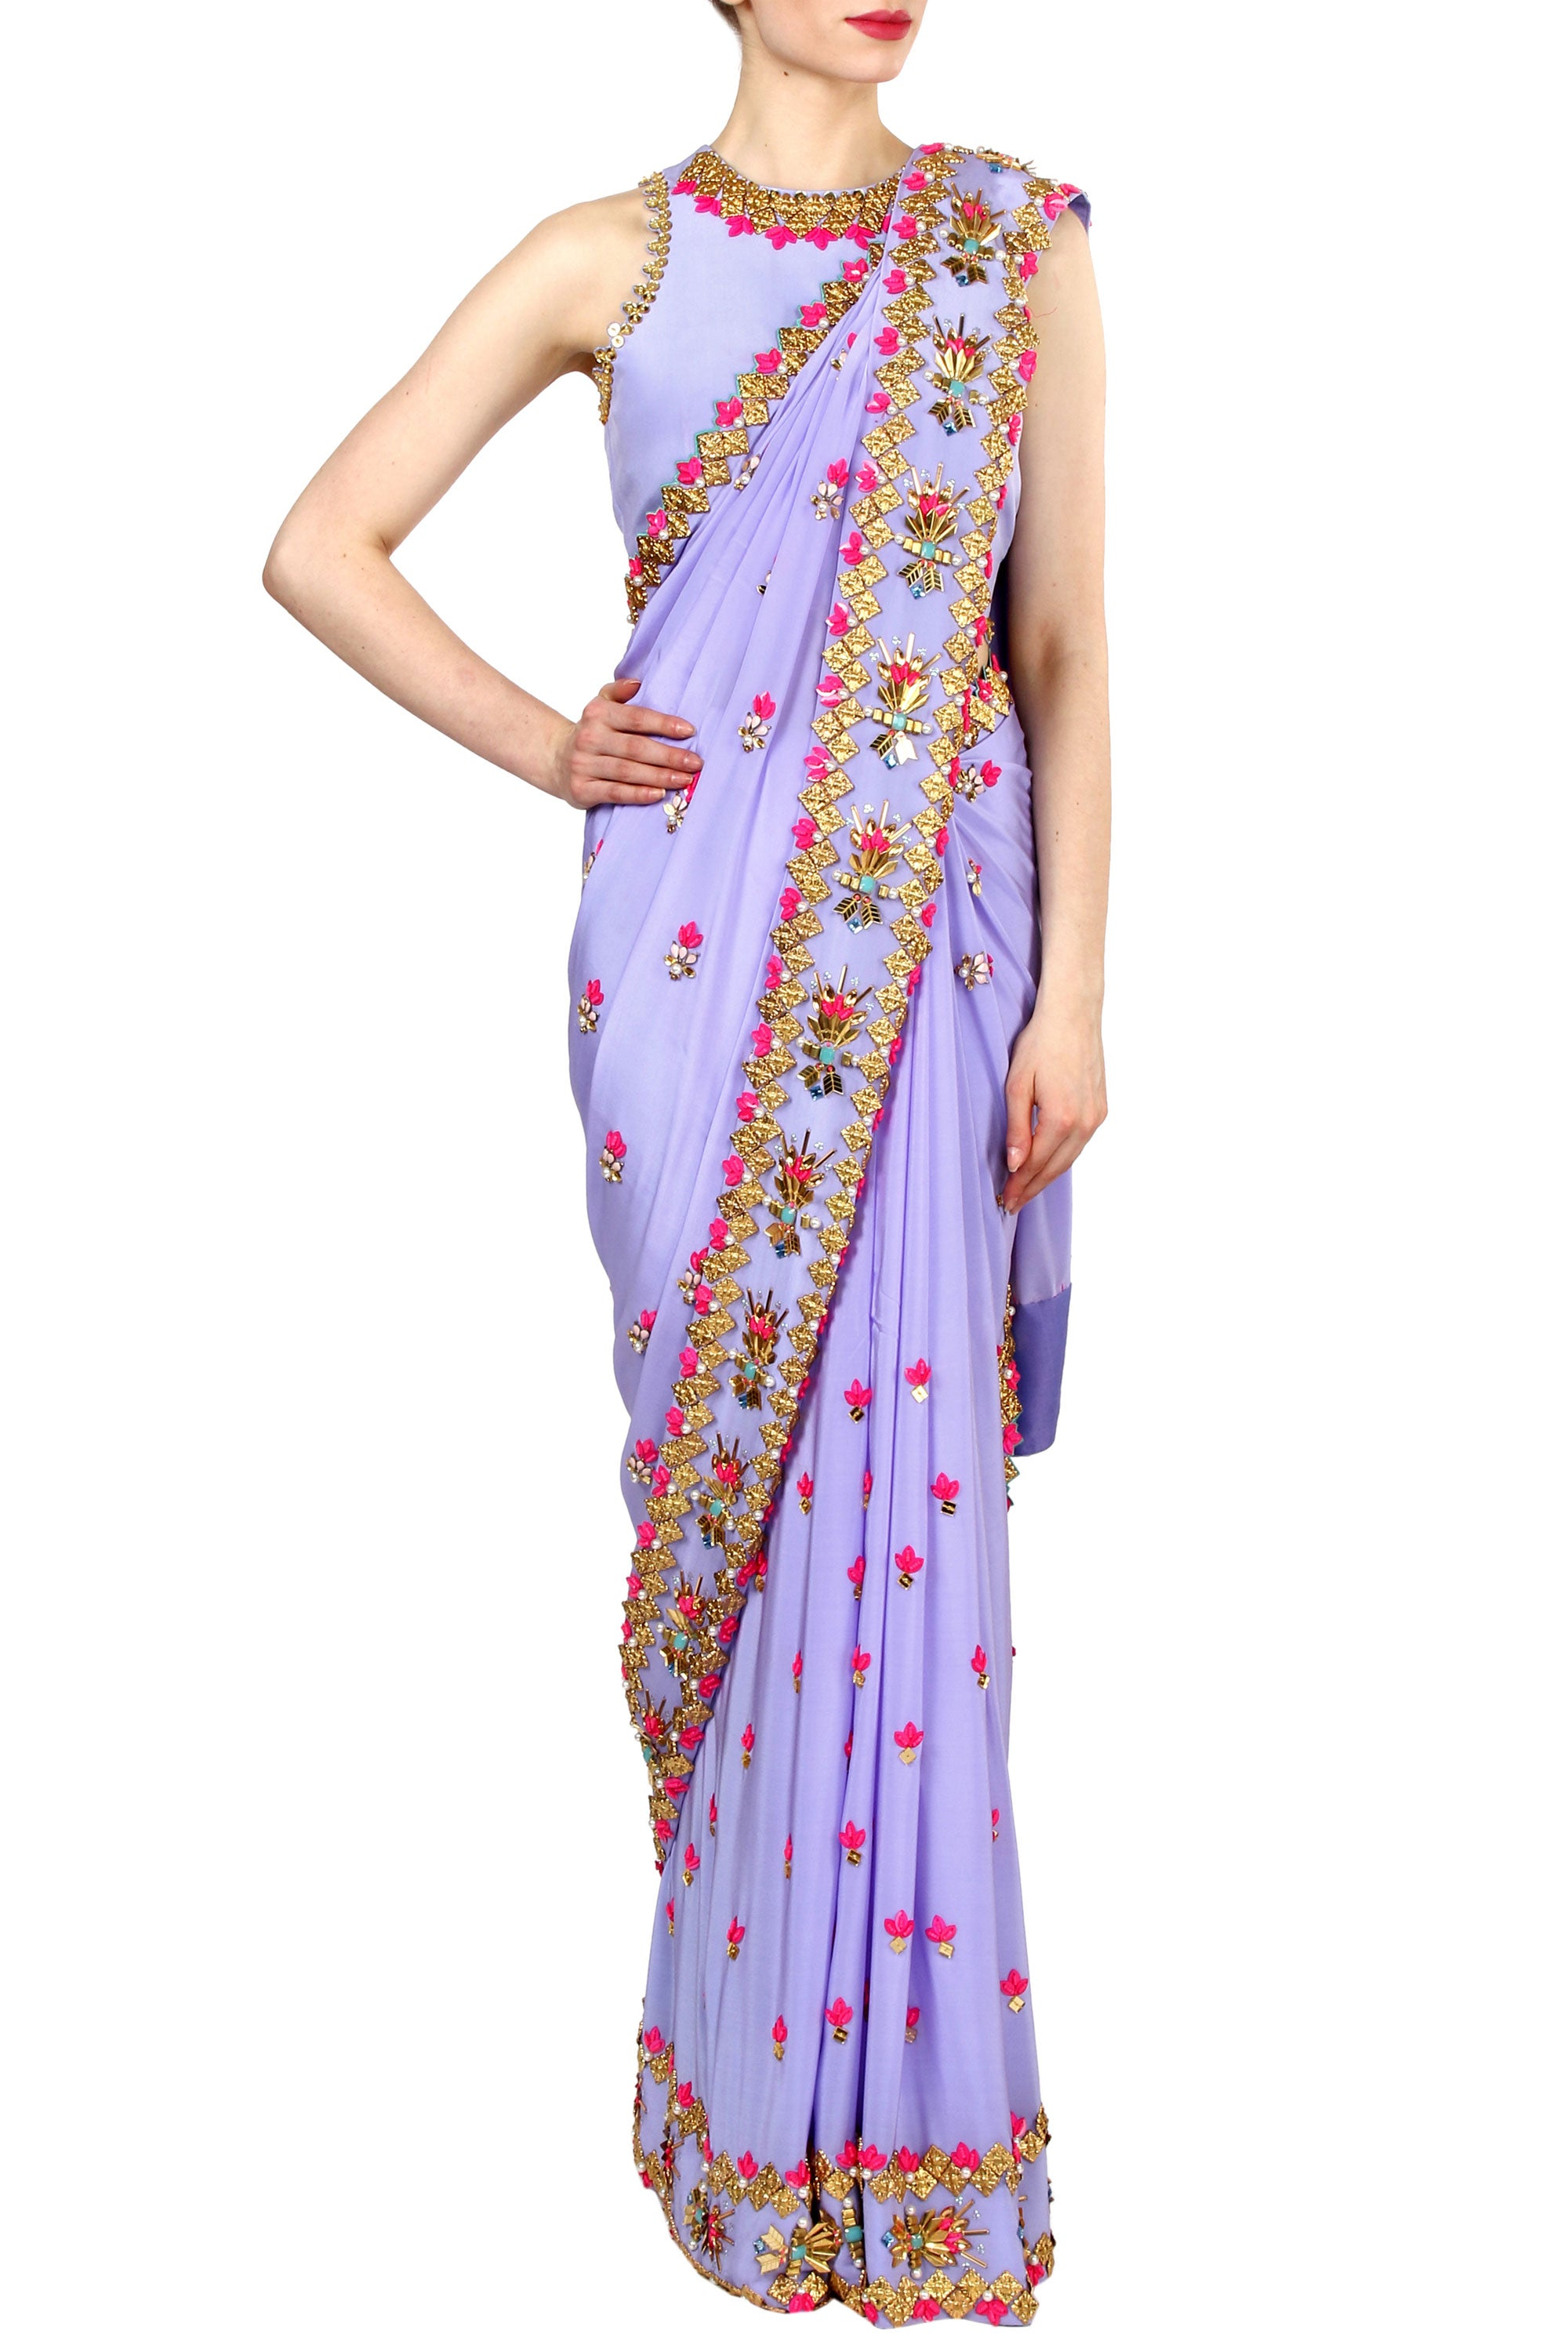 Periwinkle Lilac Saree Front